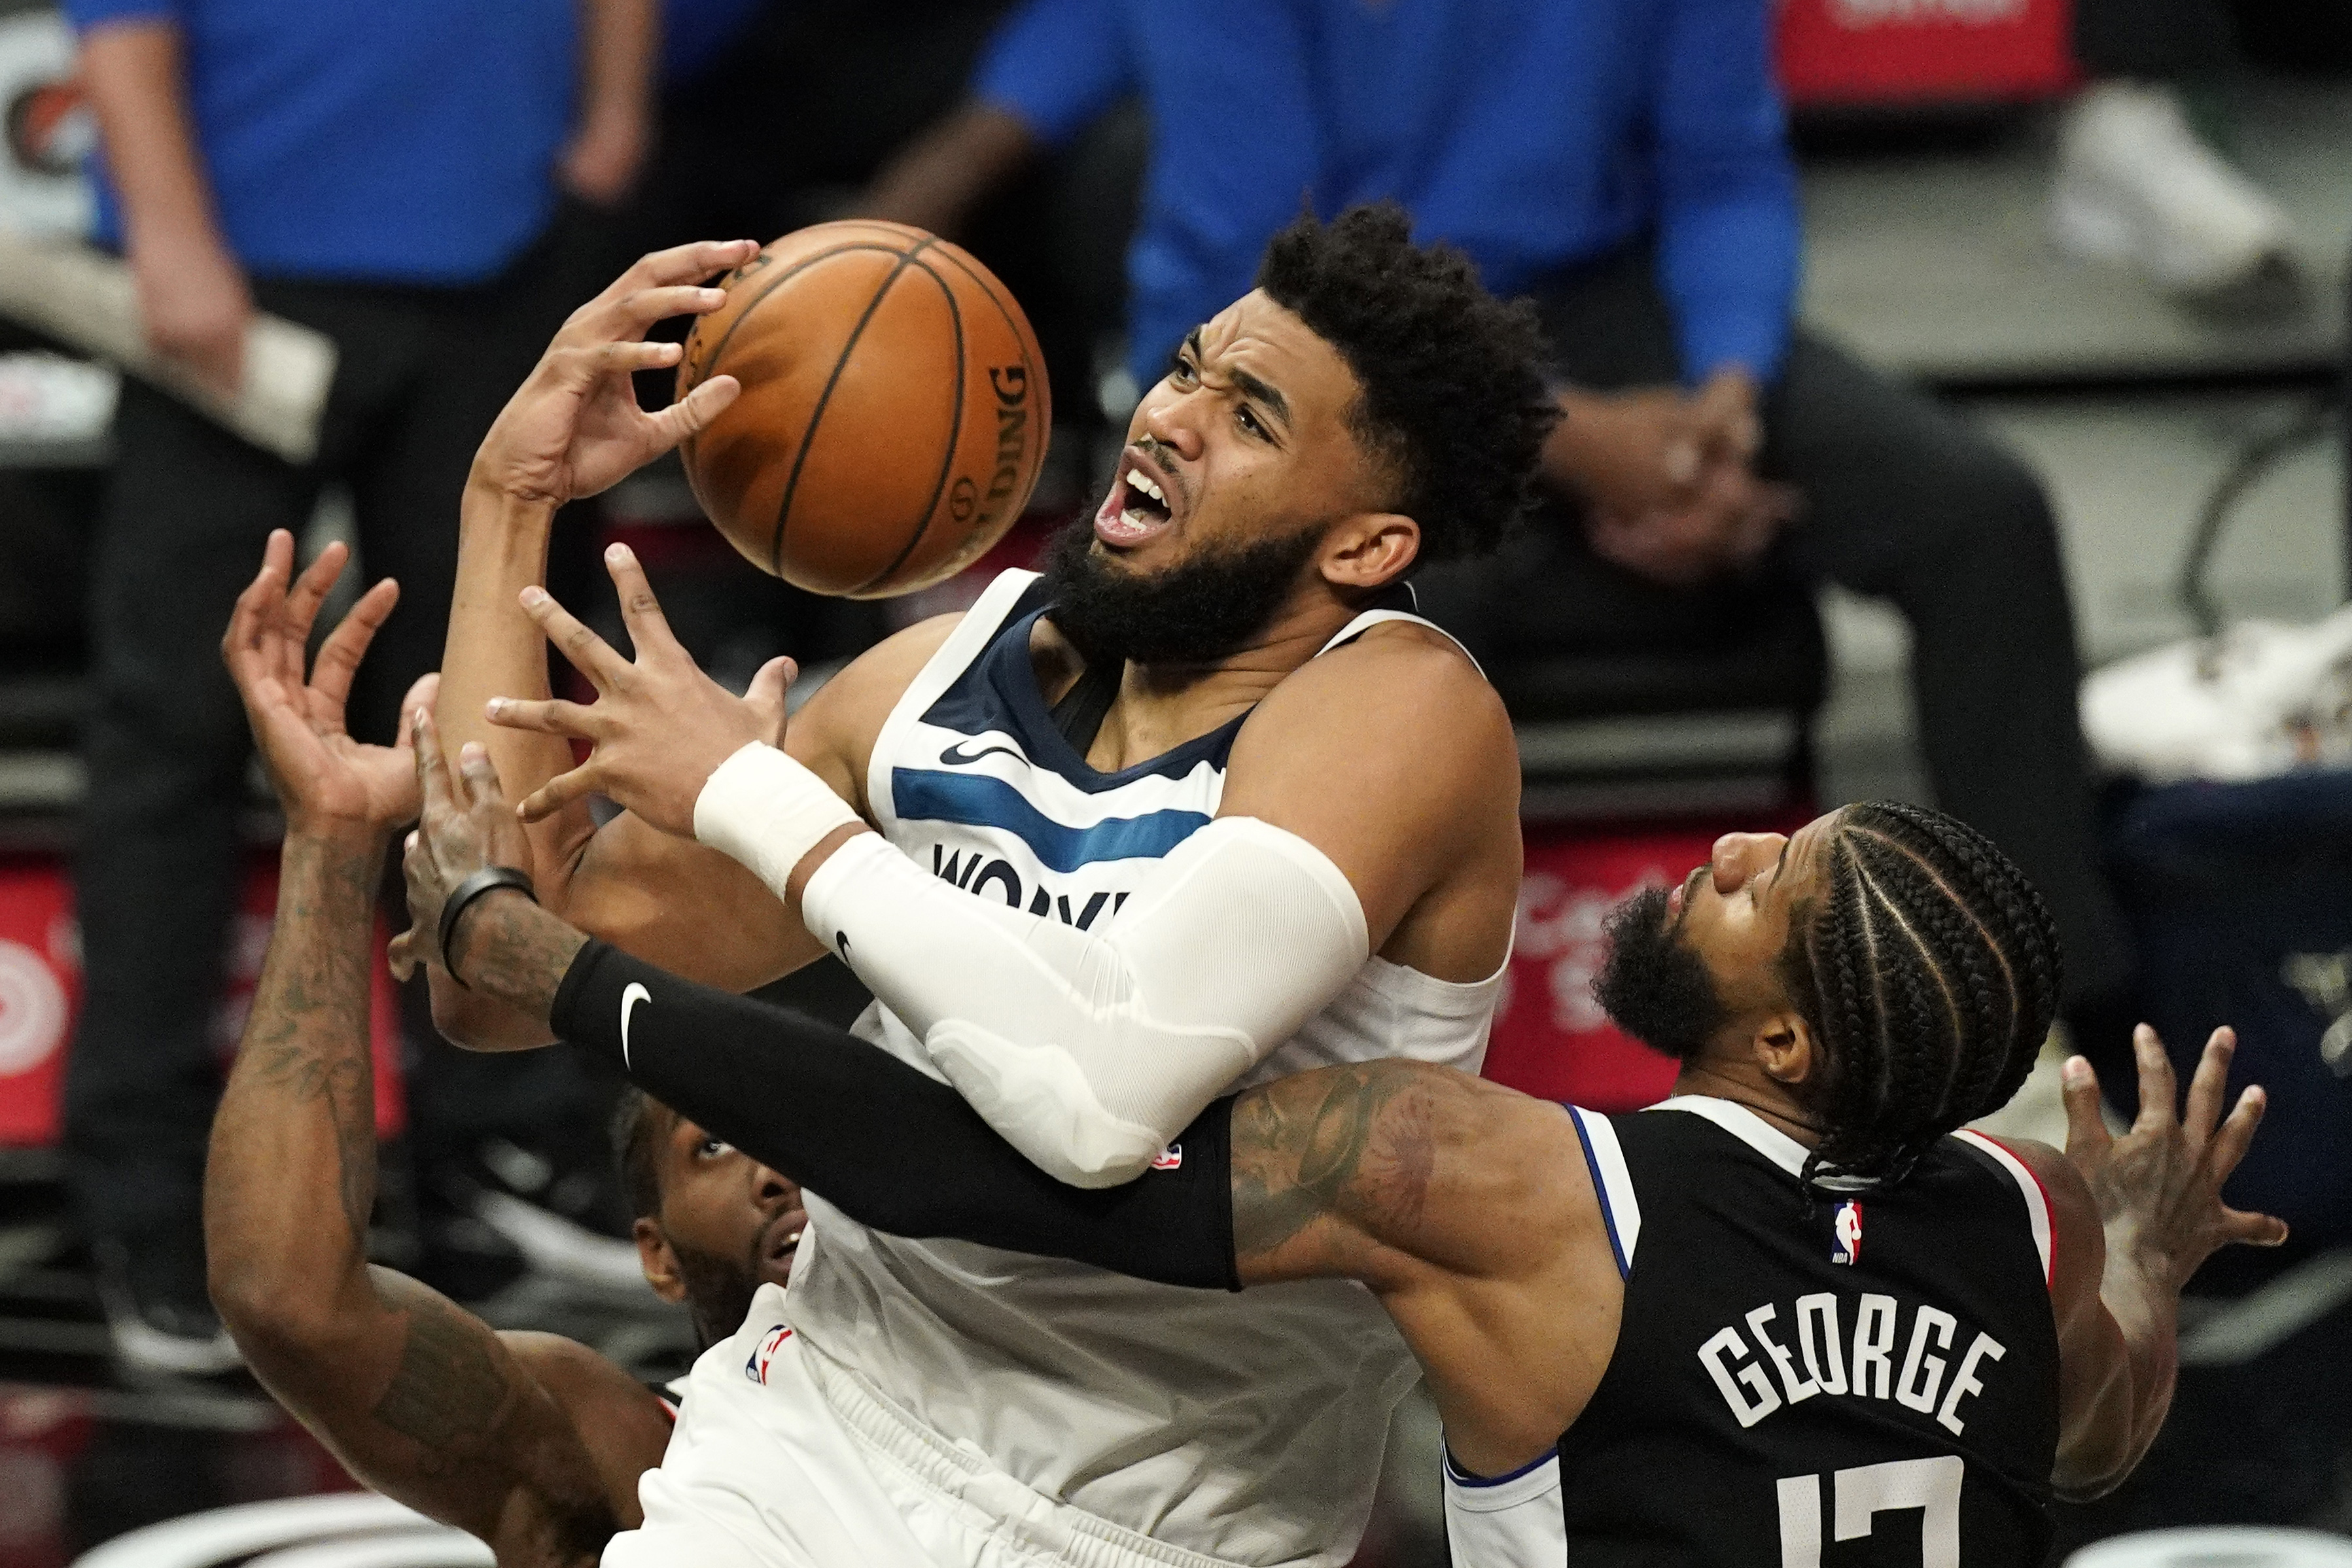 Wolves center Karl-Anthony Towns had the ball knocked from his hands by Clippers guard Paul George during the second half Sunday. Towns injured his right knee in the fourth quarter, but later said it was fine.